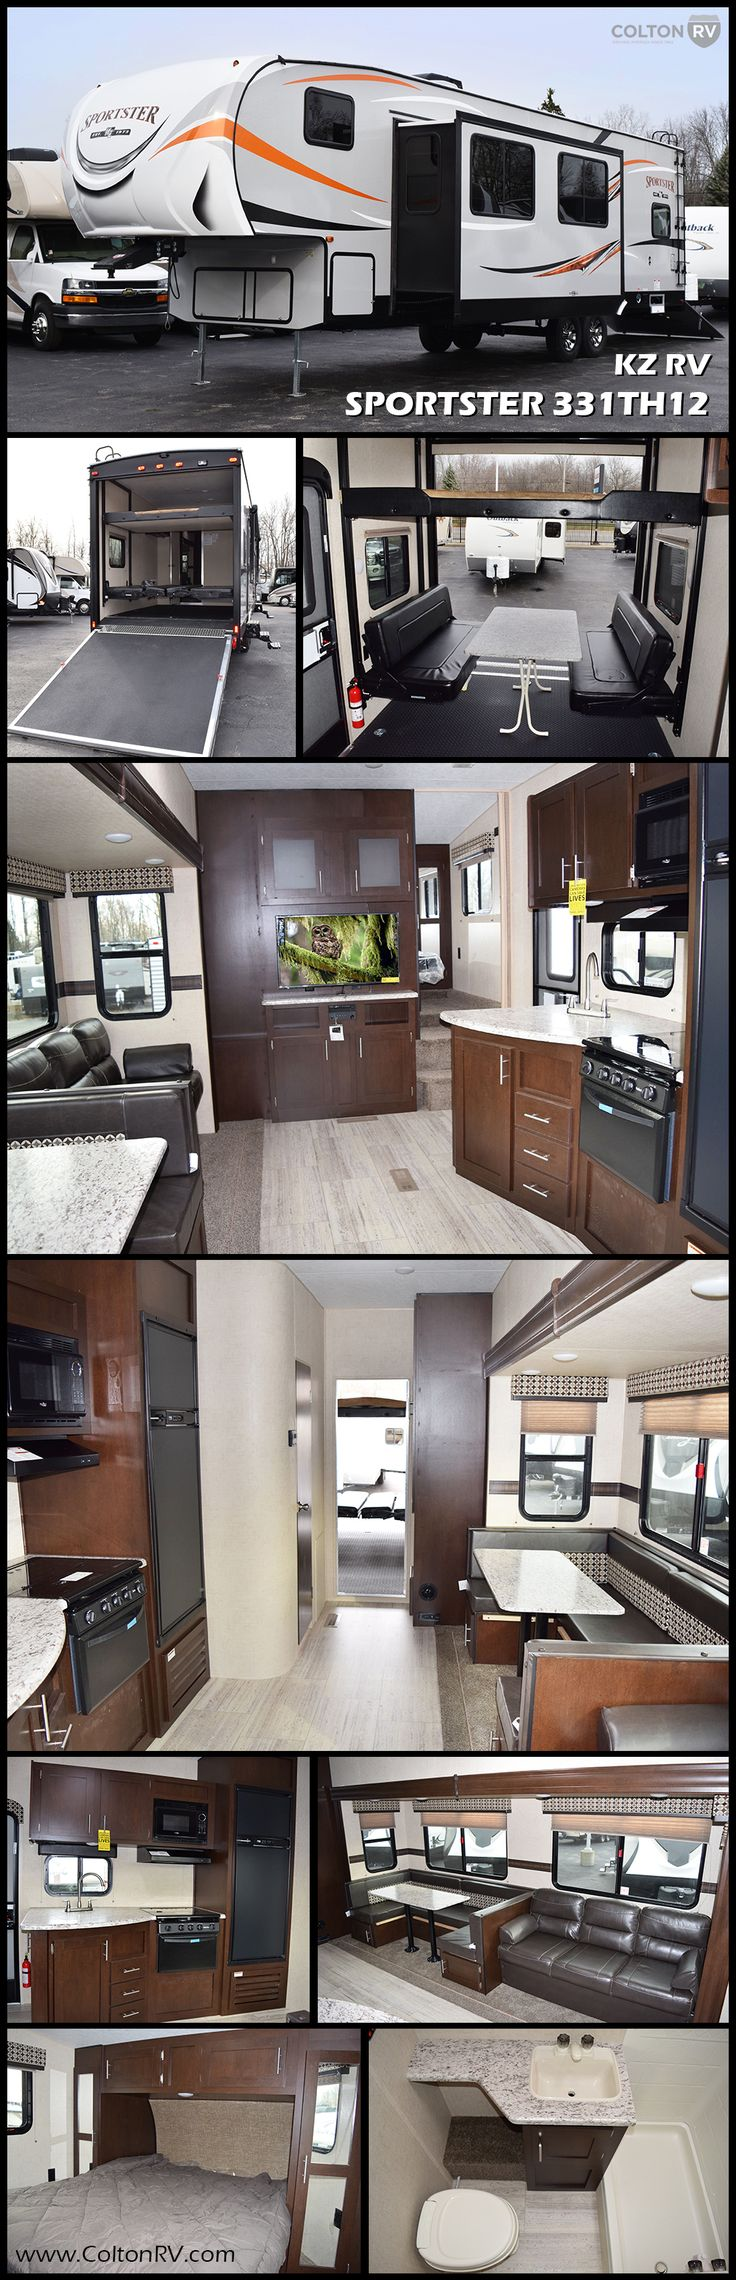 "This SPORTSTER 331TH12 Fifth Wheel Toy Hauler by KZ RV features a single slide out in the main living area, a front bedroom, and a private cargo area with a side man door for easy access. The 88"" x 91"" ramp door makes for easy loading and unloading your off road toys.  There is a drop down power bed with a Sit & Sleep below in the cargo area if you need more sleeping space."